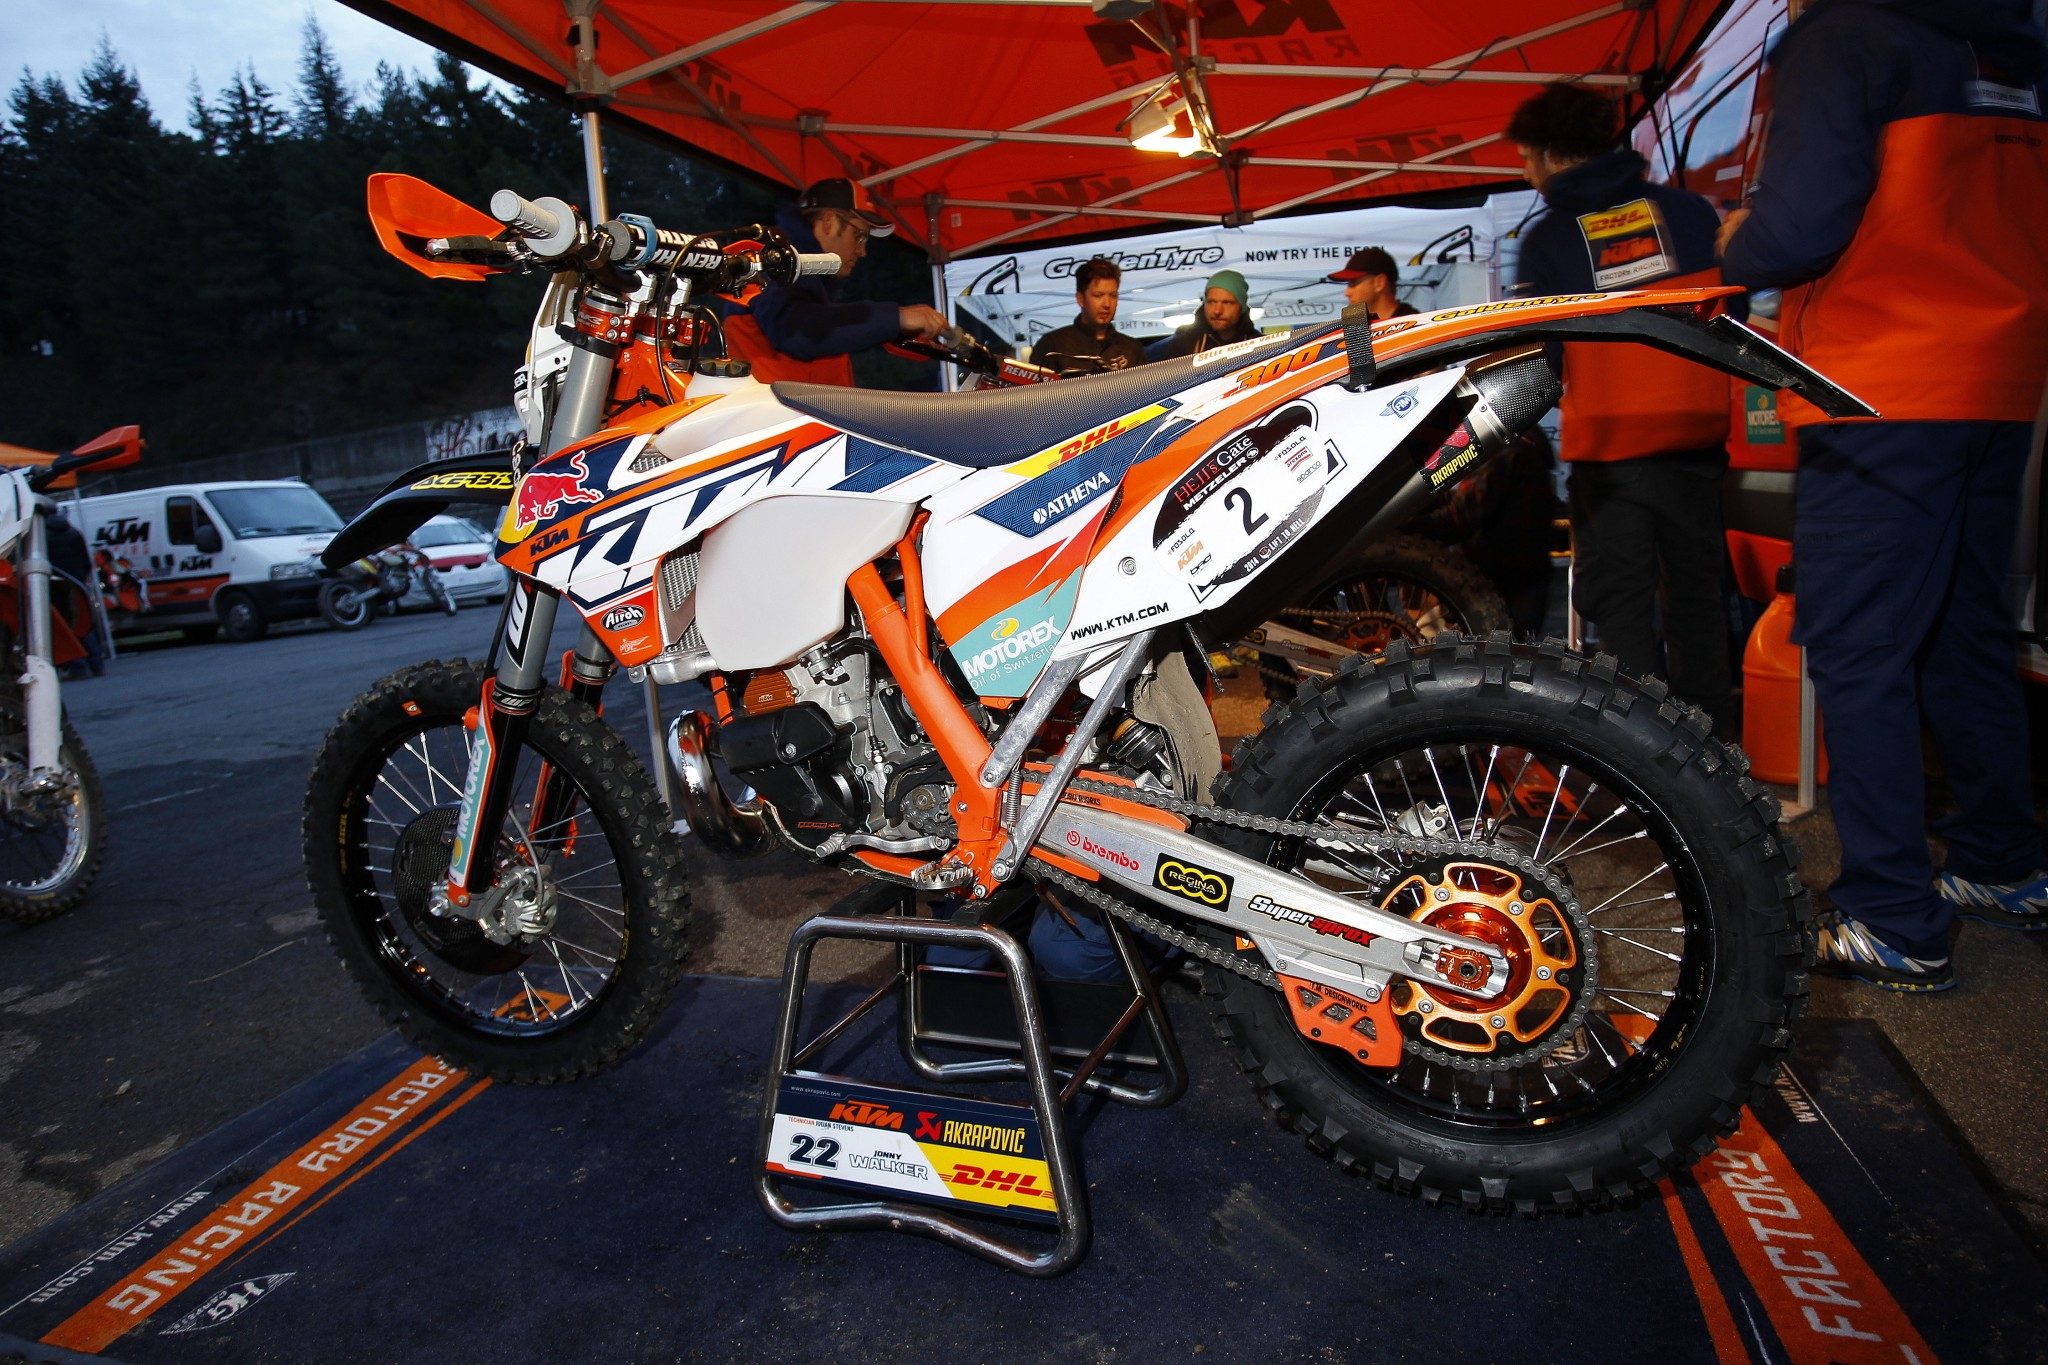 2014 hell's gate enduro – italy | derestricted